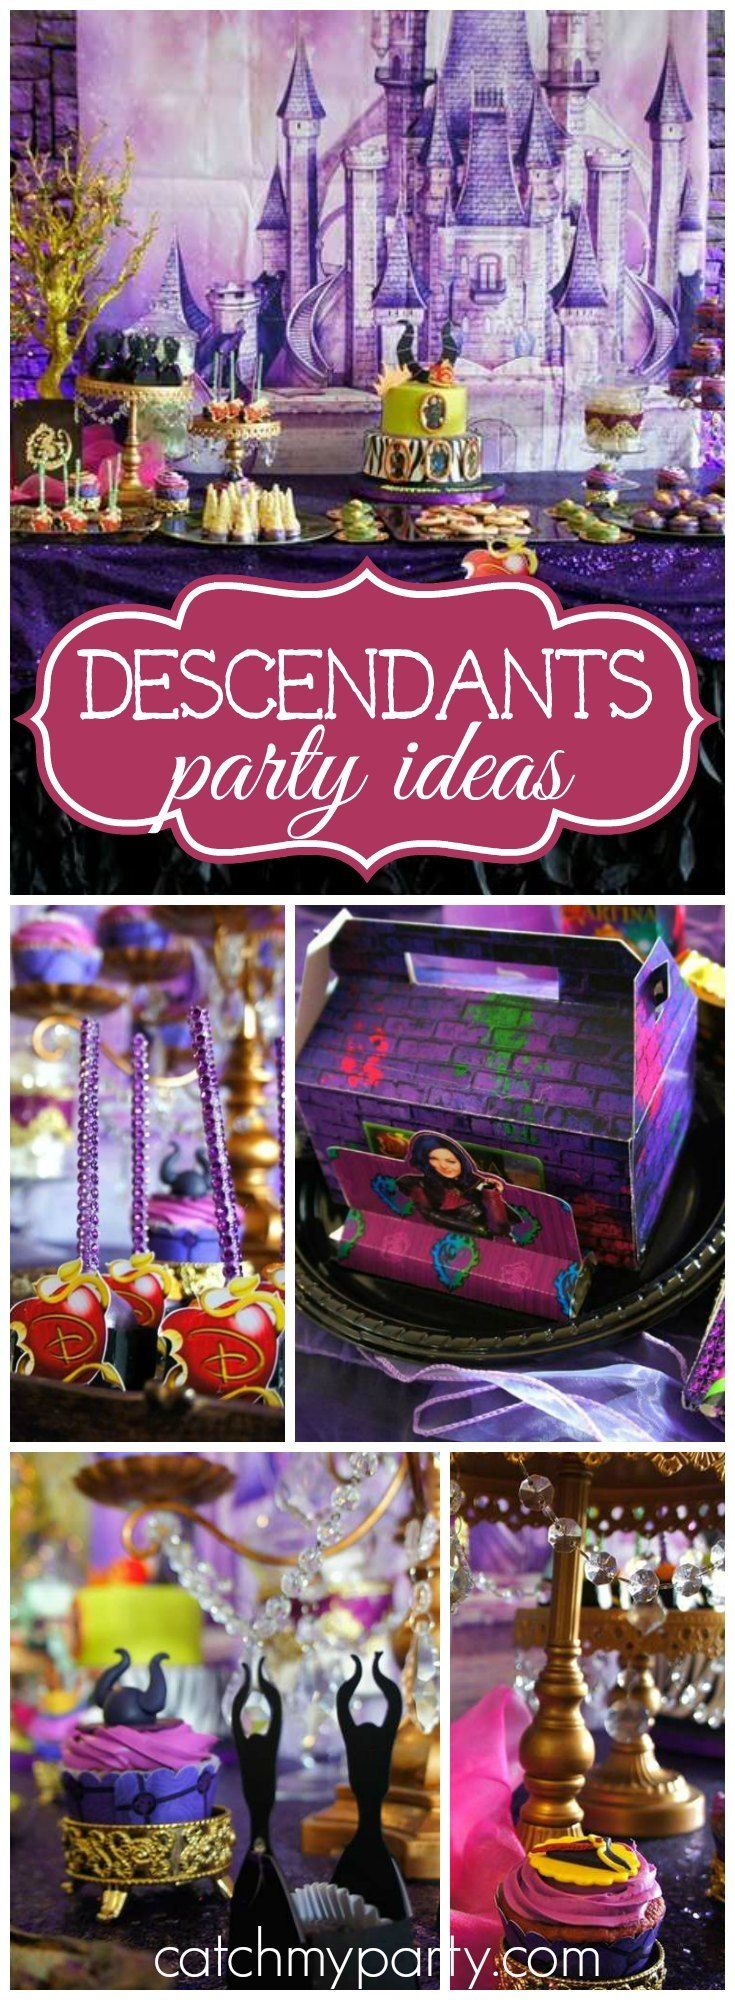 Such a gorgeous Disney Descendants girl birthday party! See more party ideas at Catchmyparty.com!